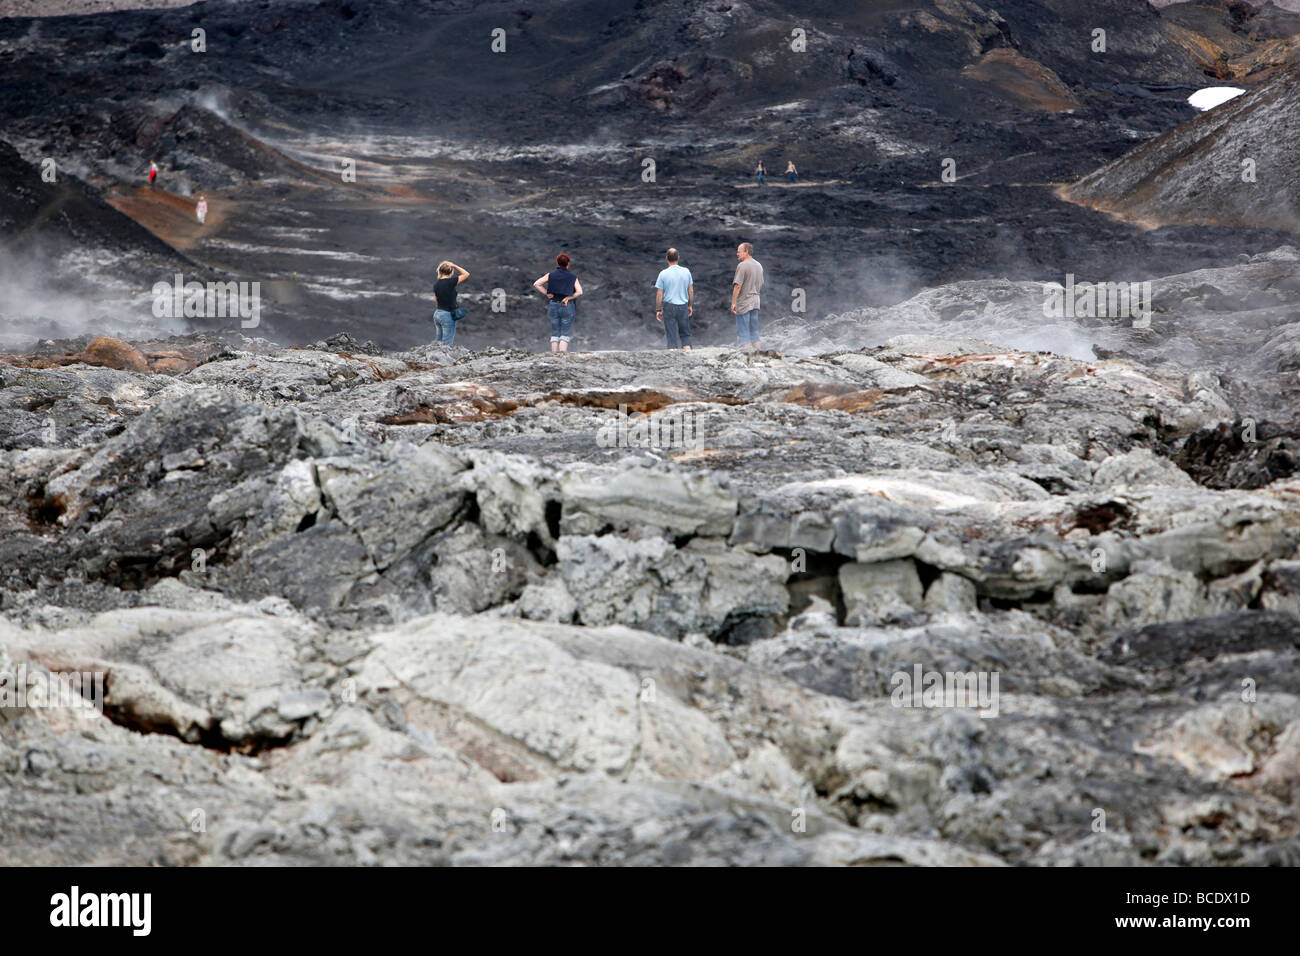 Four people look over a lava field, Krafla, Iceland Stock Photo